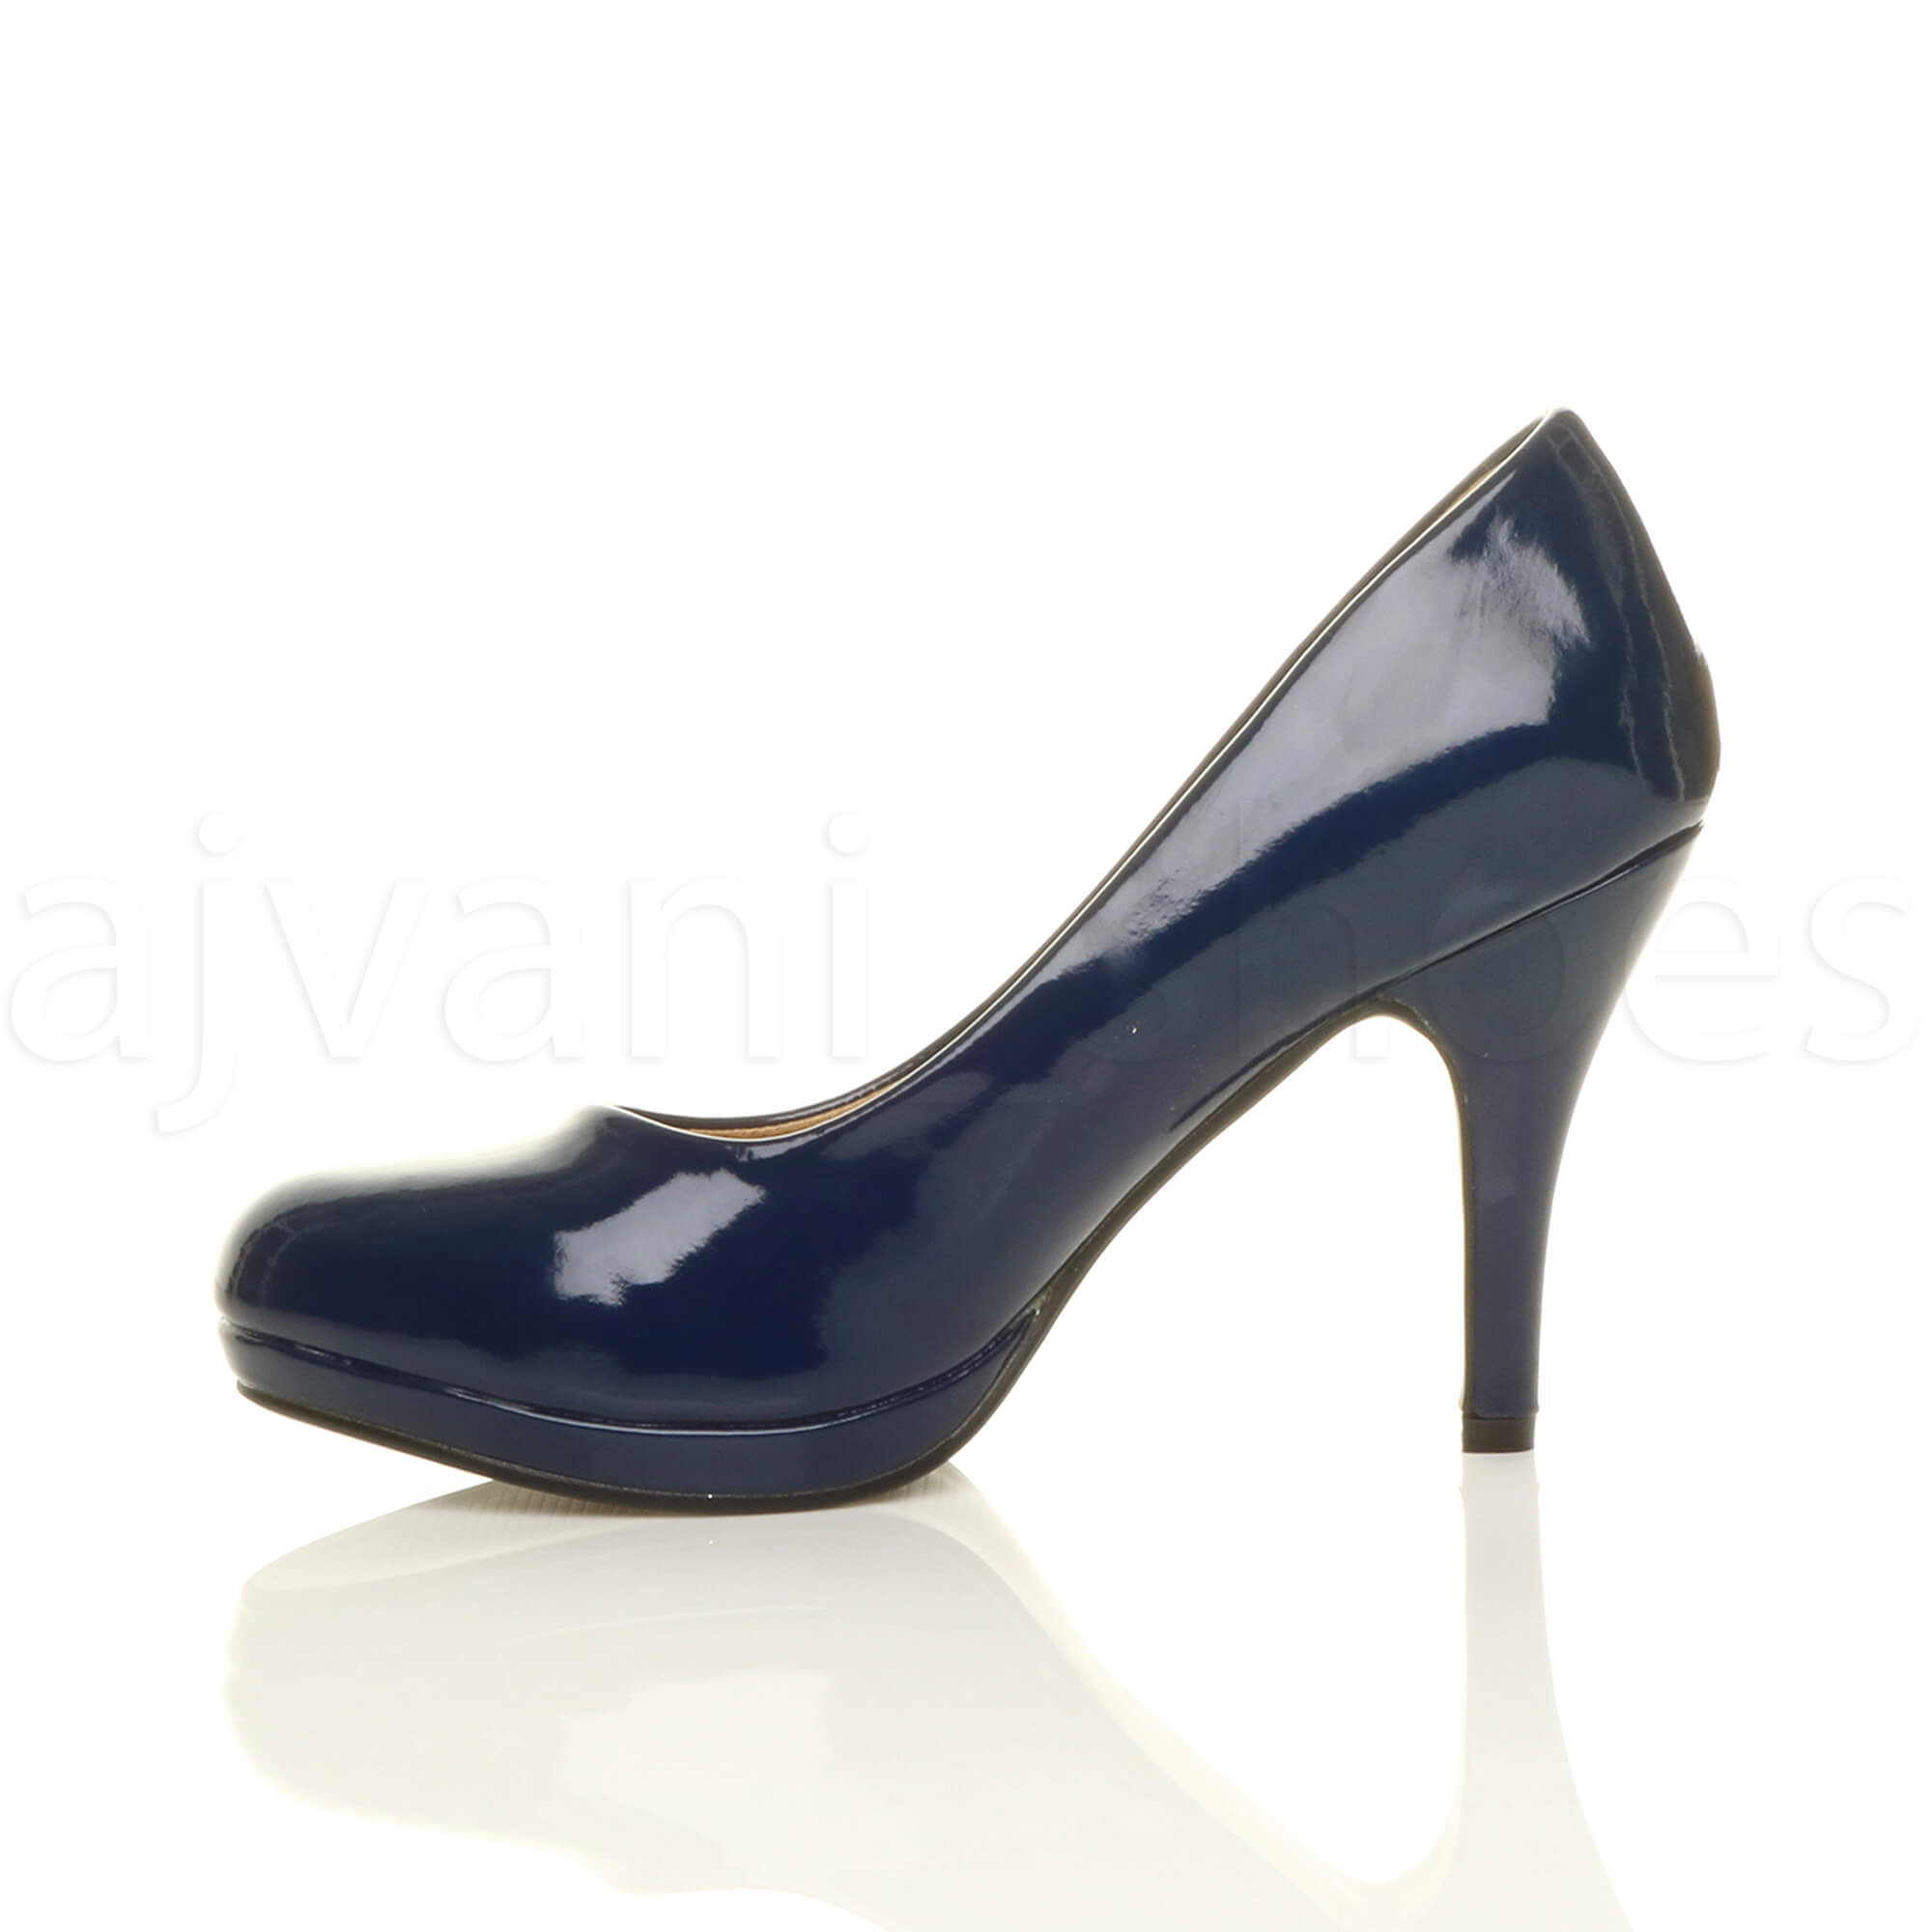 a9254be5cda Find great deals on eBay for court shoes. Shop with confidence.